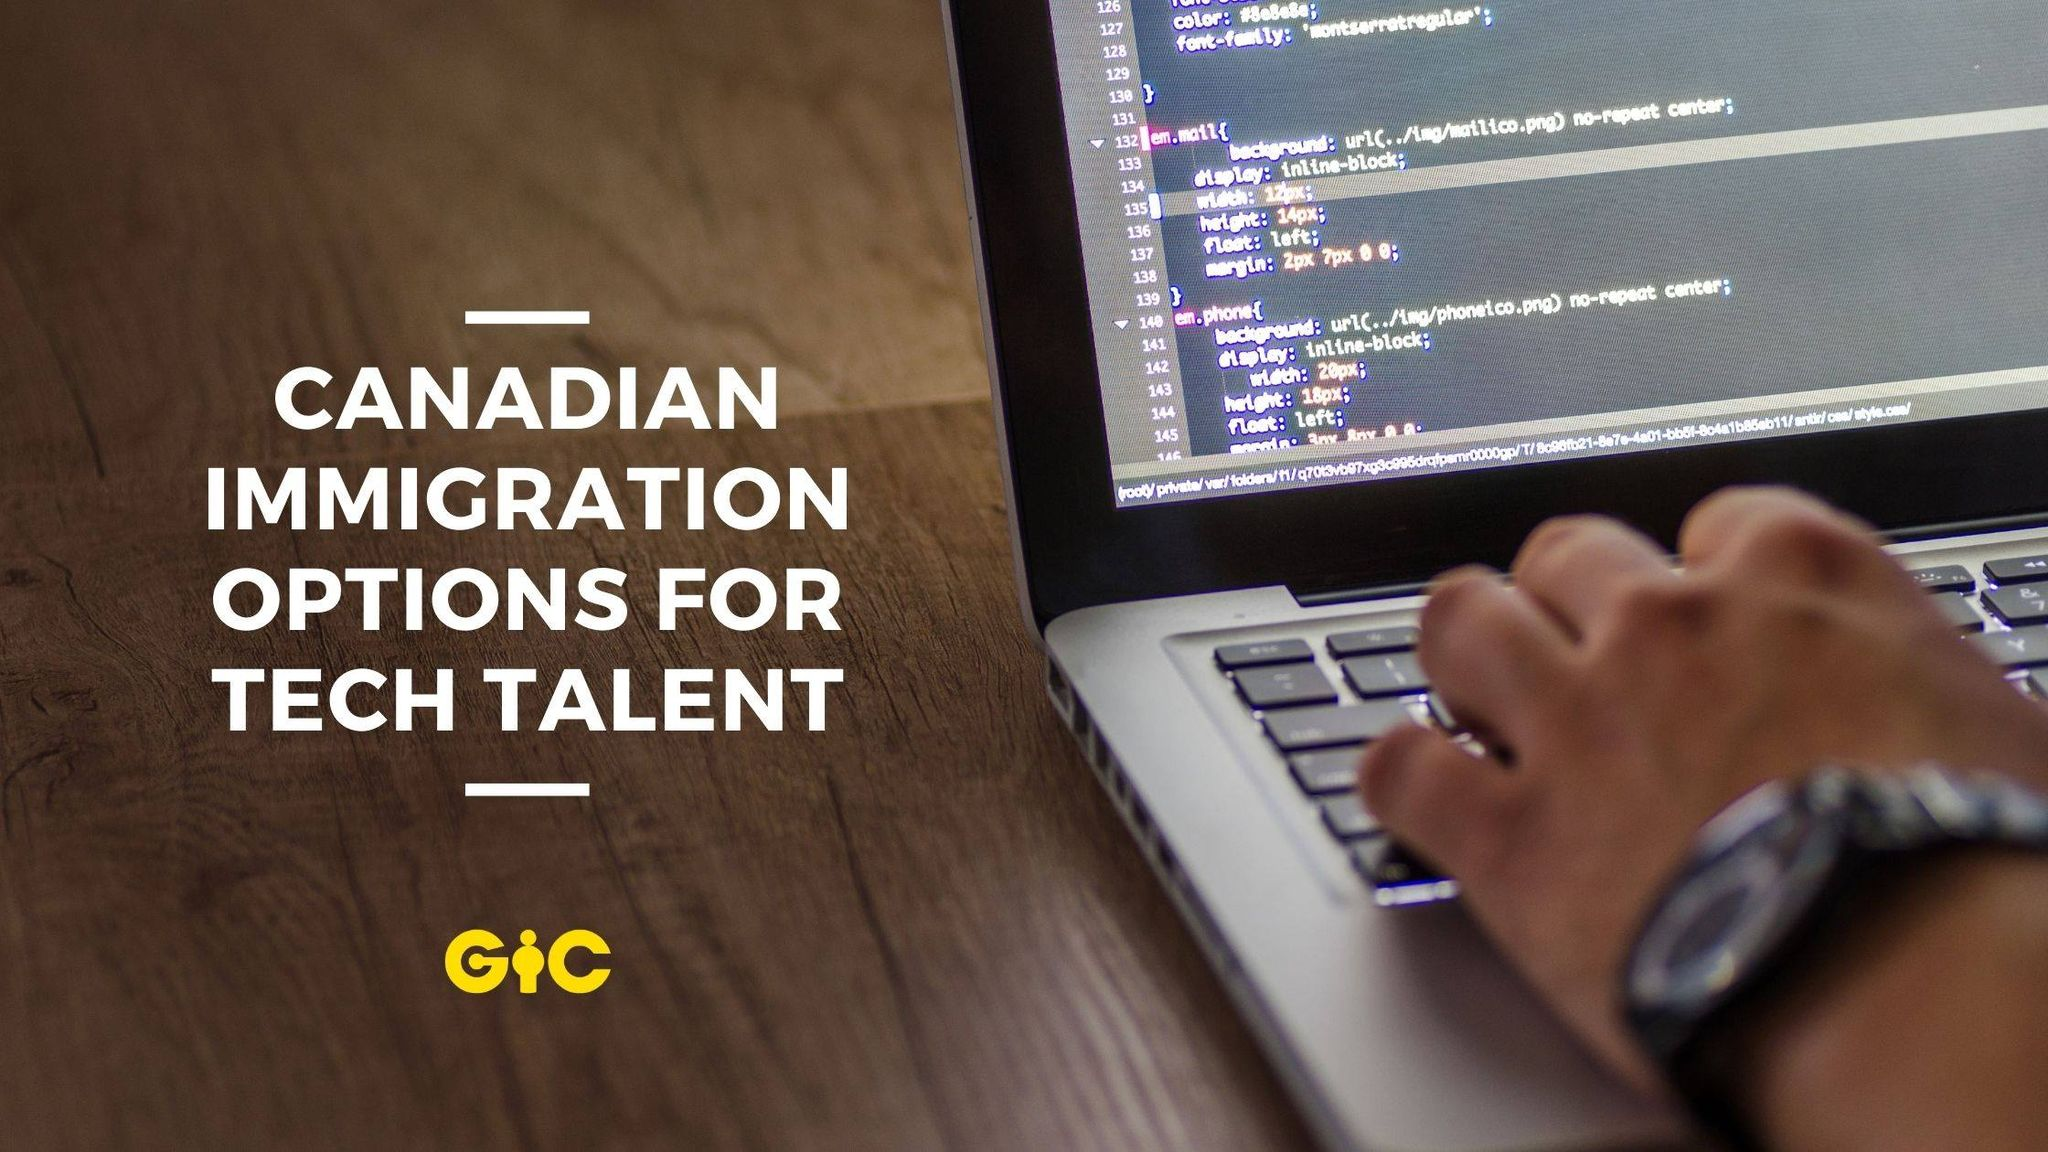 Canadian immigration options for tech talent